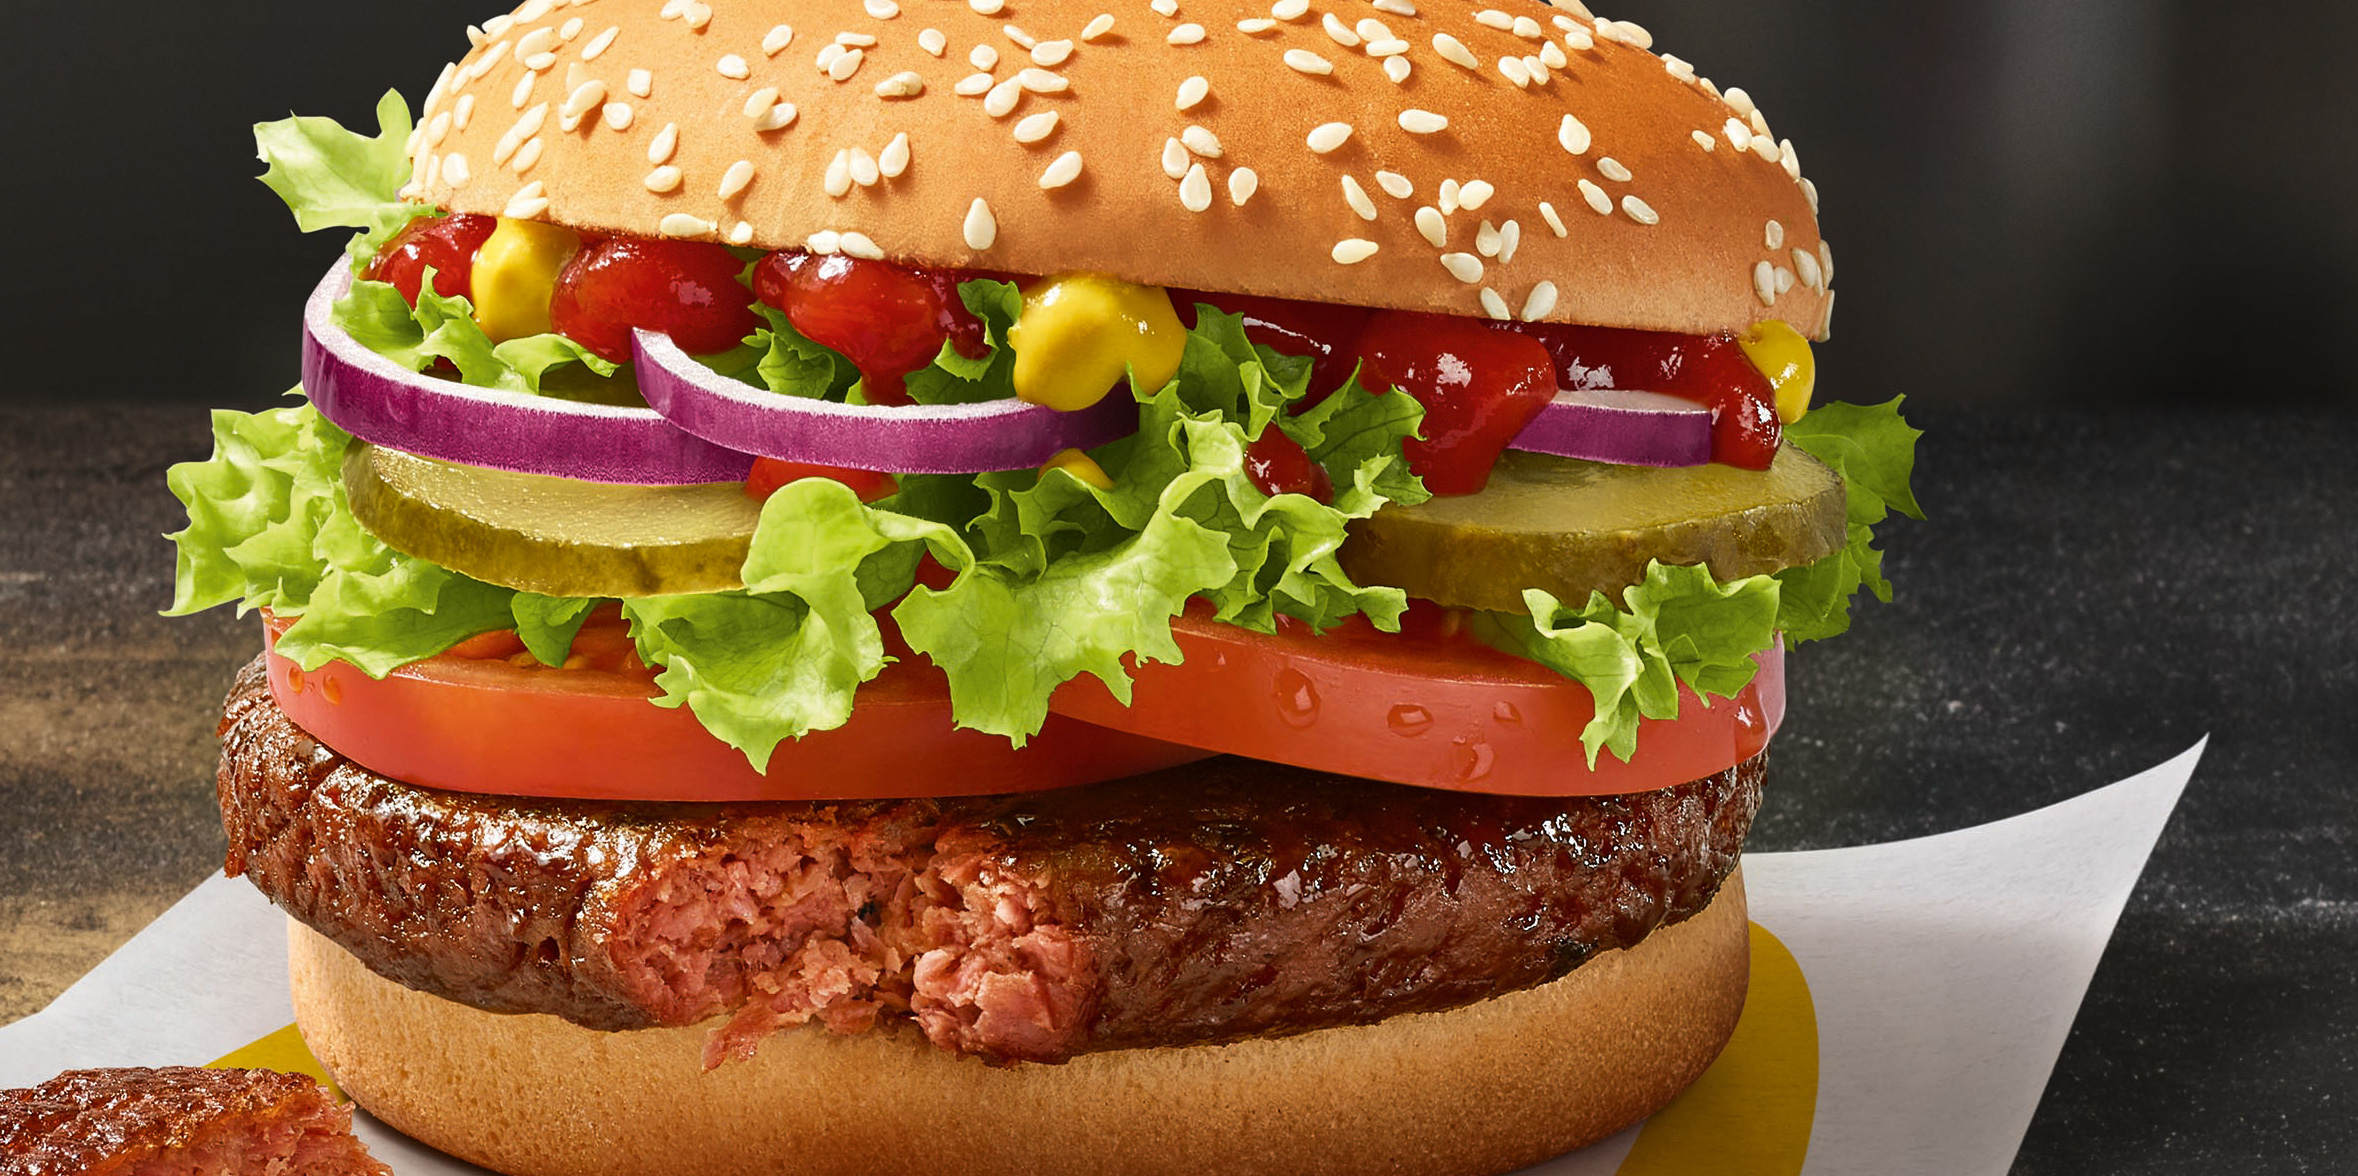 veganburger-mcdonalds-1